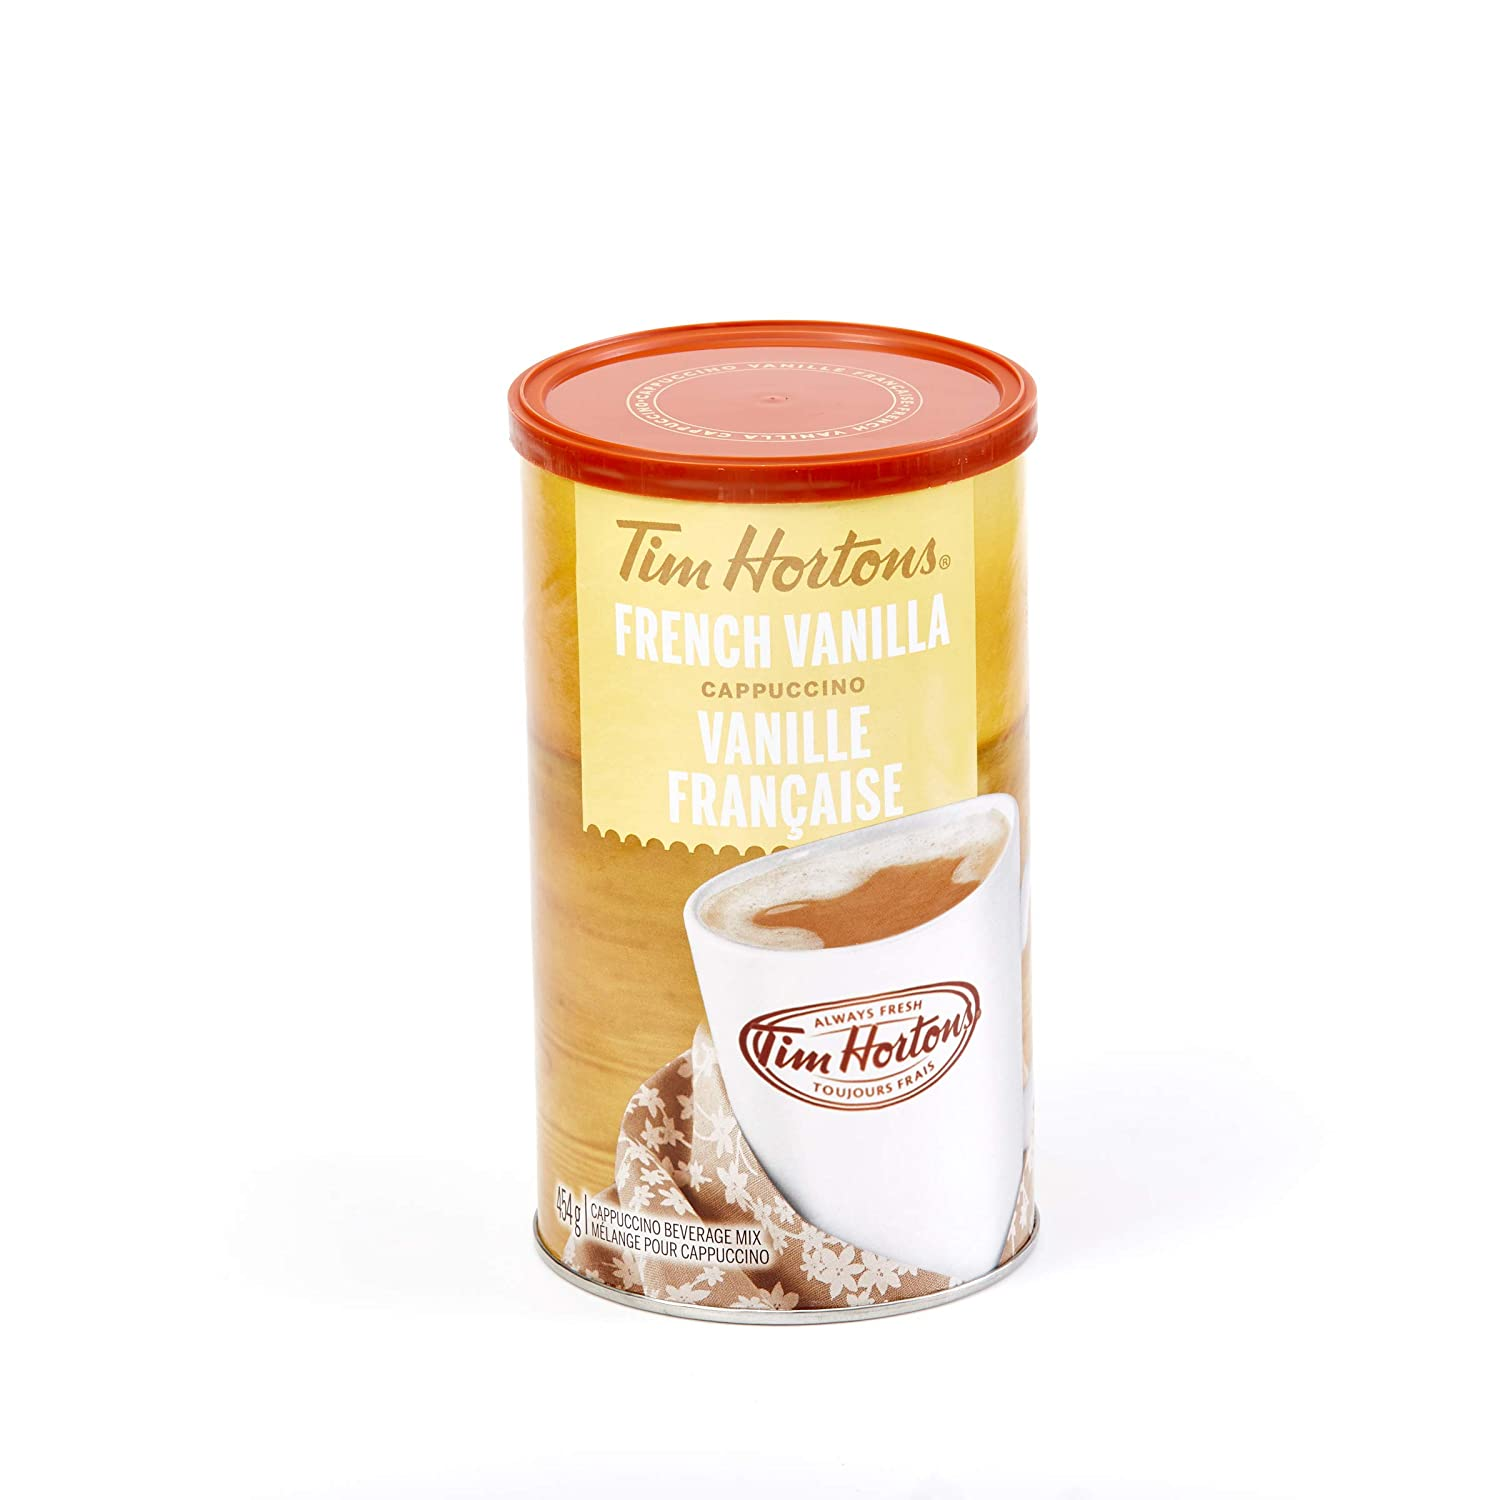 Amazon.com : Tim Horton's Instant Cappuccino, French Vanilla, 16 Ounce : Instant Coffee : Grocery & Gourmet Food